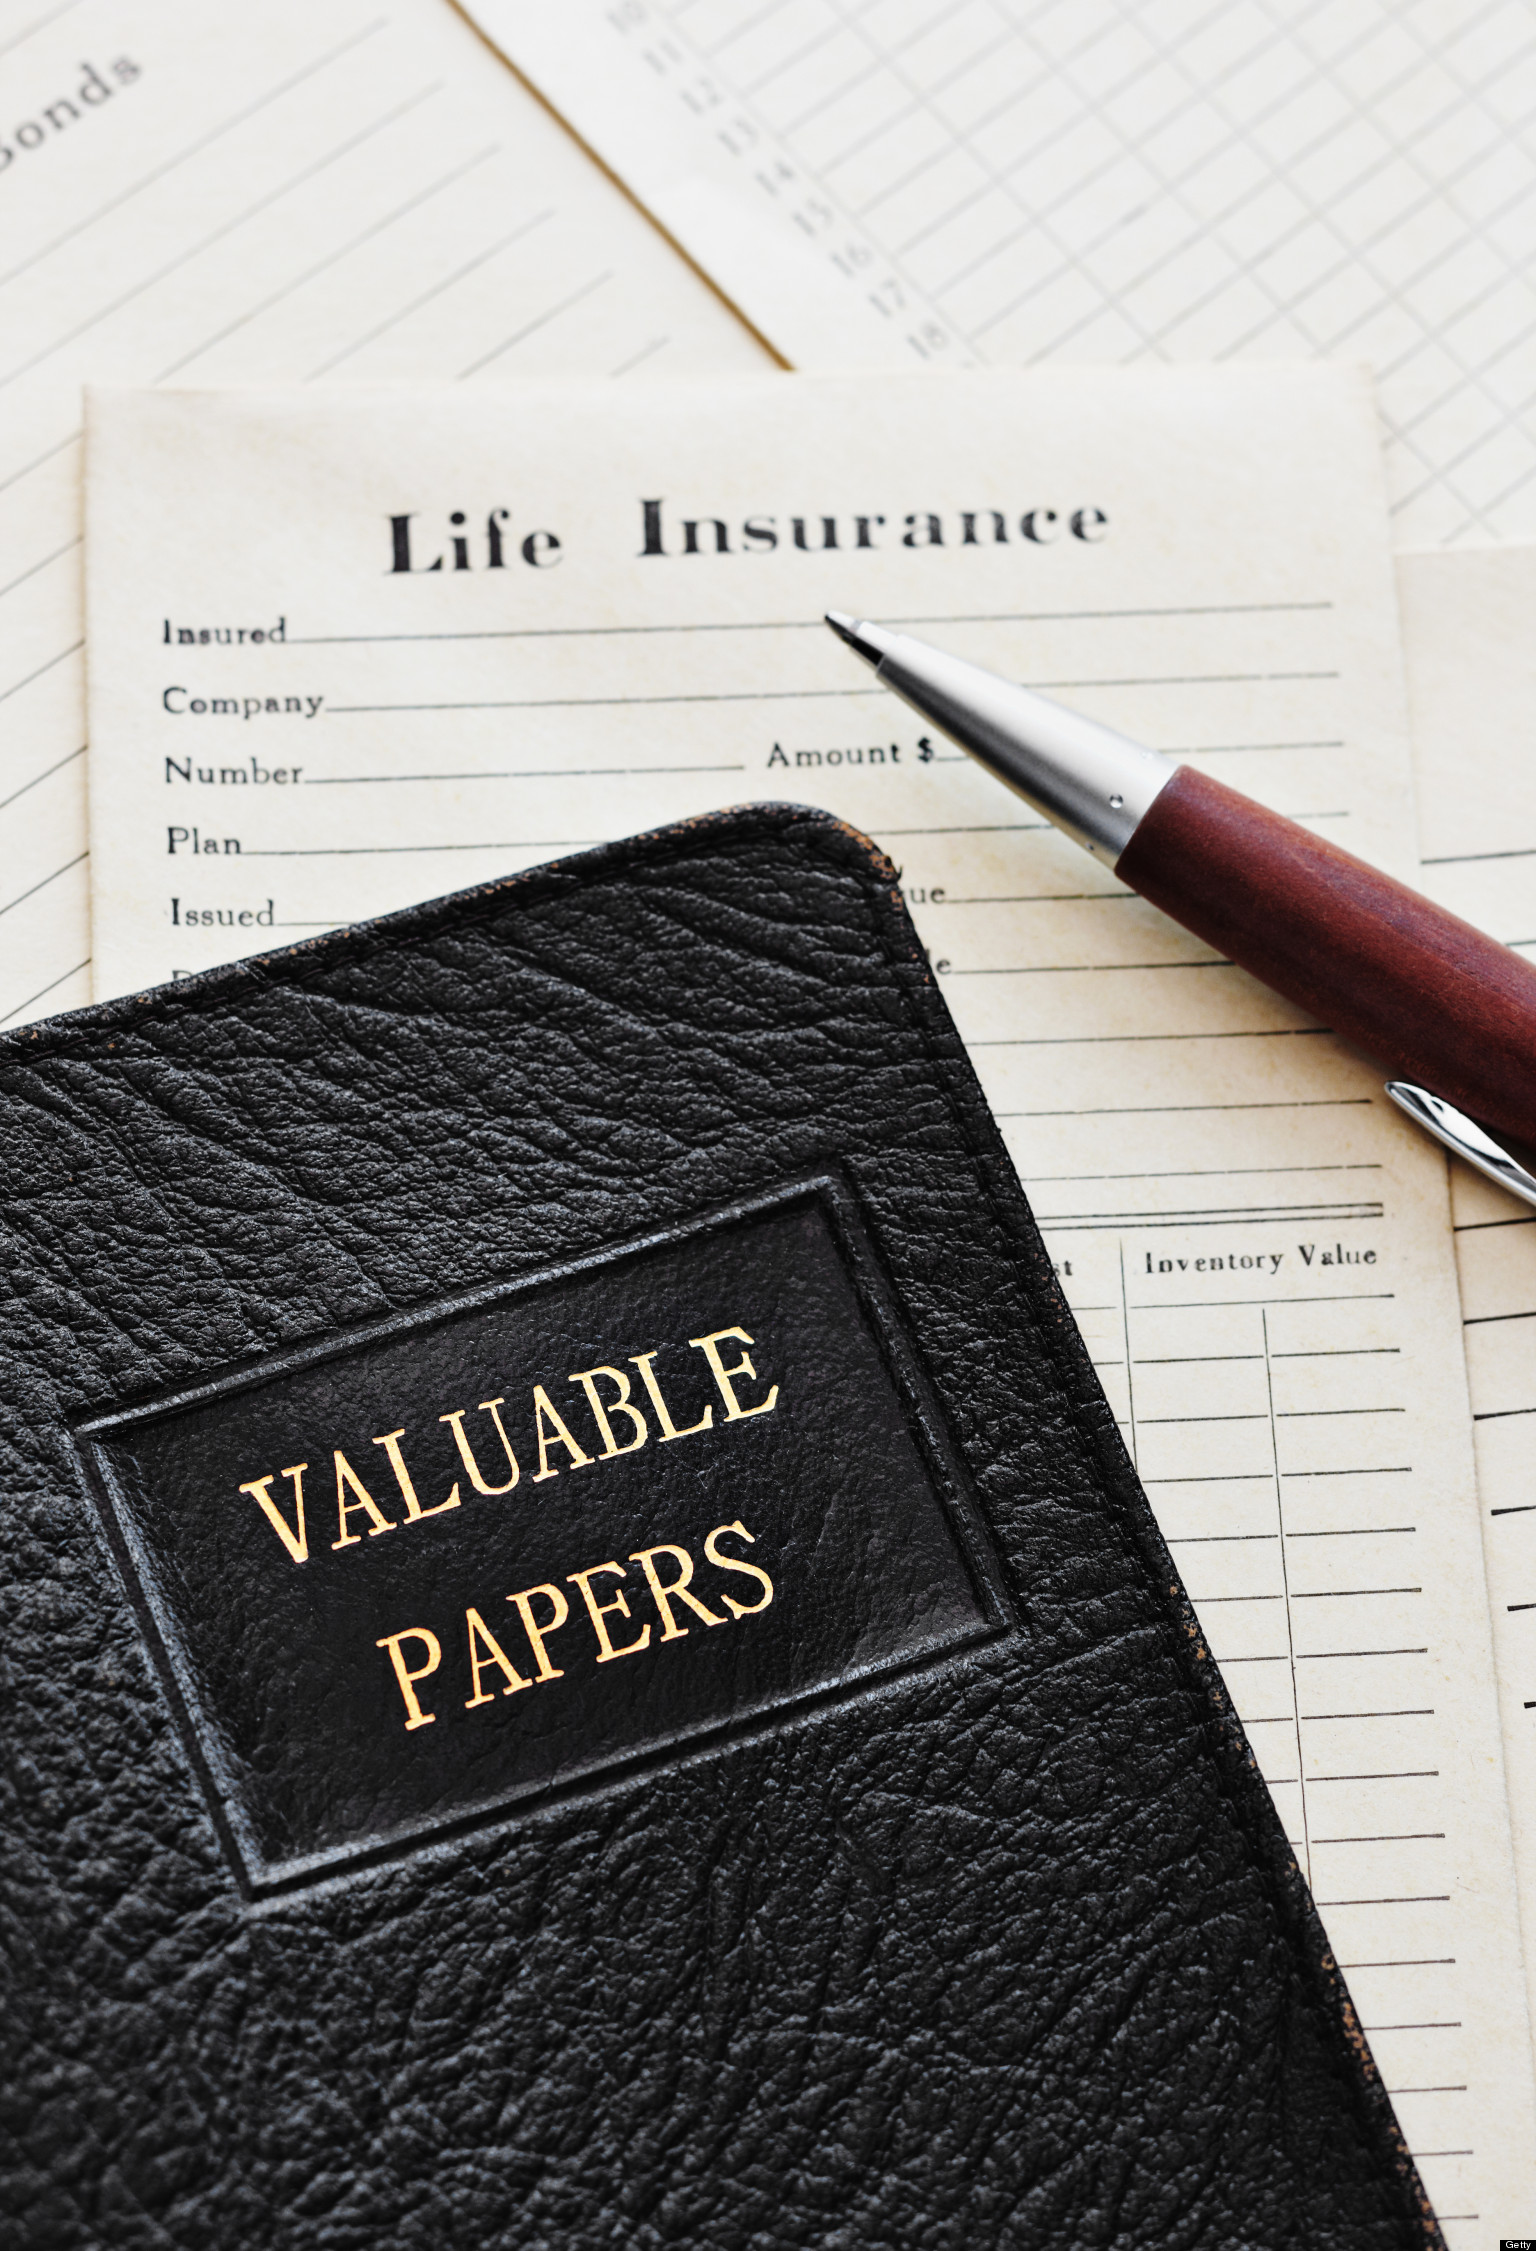 How To Find Lost Life Insurance Policies  Huffpost. Crouse Chemical Dependency Lanes Pest Control. Paternity Leave California Law. How To Design A Website Like Facebook. Schooling For Physical Therapy Assistant. Facelift Fort Lauderdale Delta Sky Miles Amex. Online Epidemiology Course Dish Phone Numbers. Electrical Contractors Orange County. Riverside Carpet Cleaning Dial Up Modem Speed